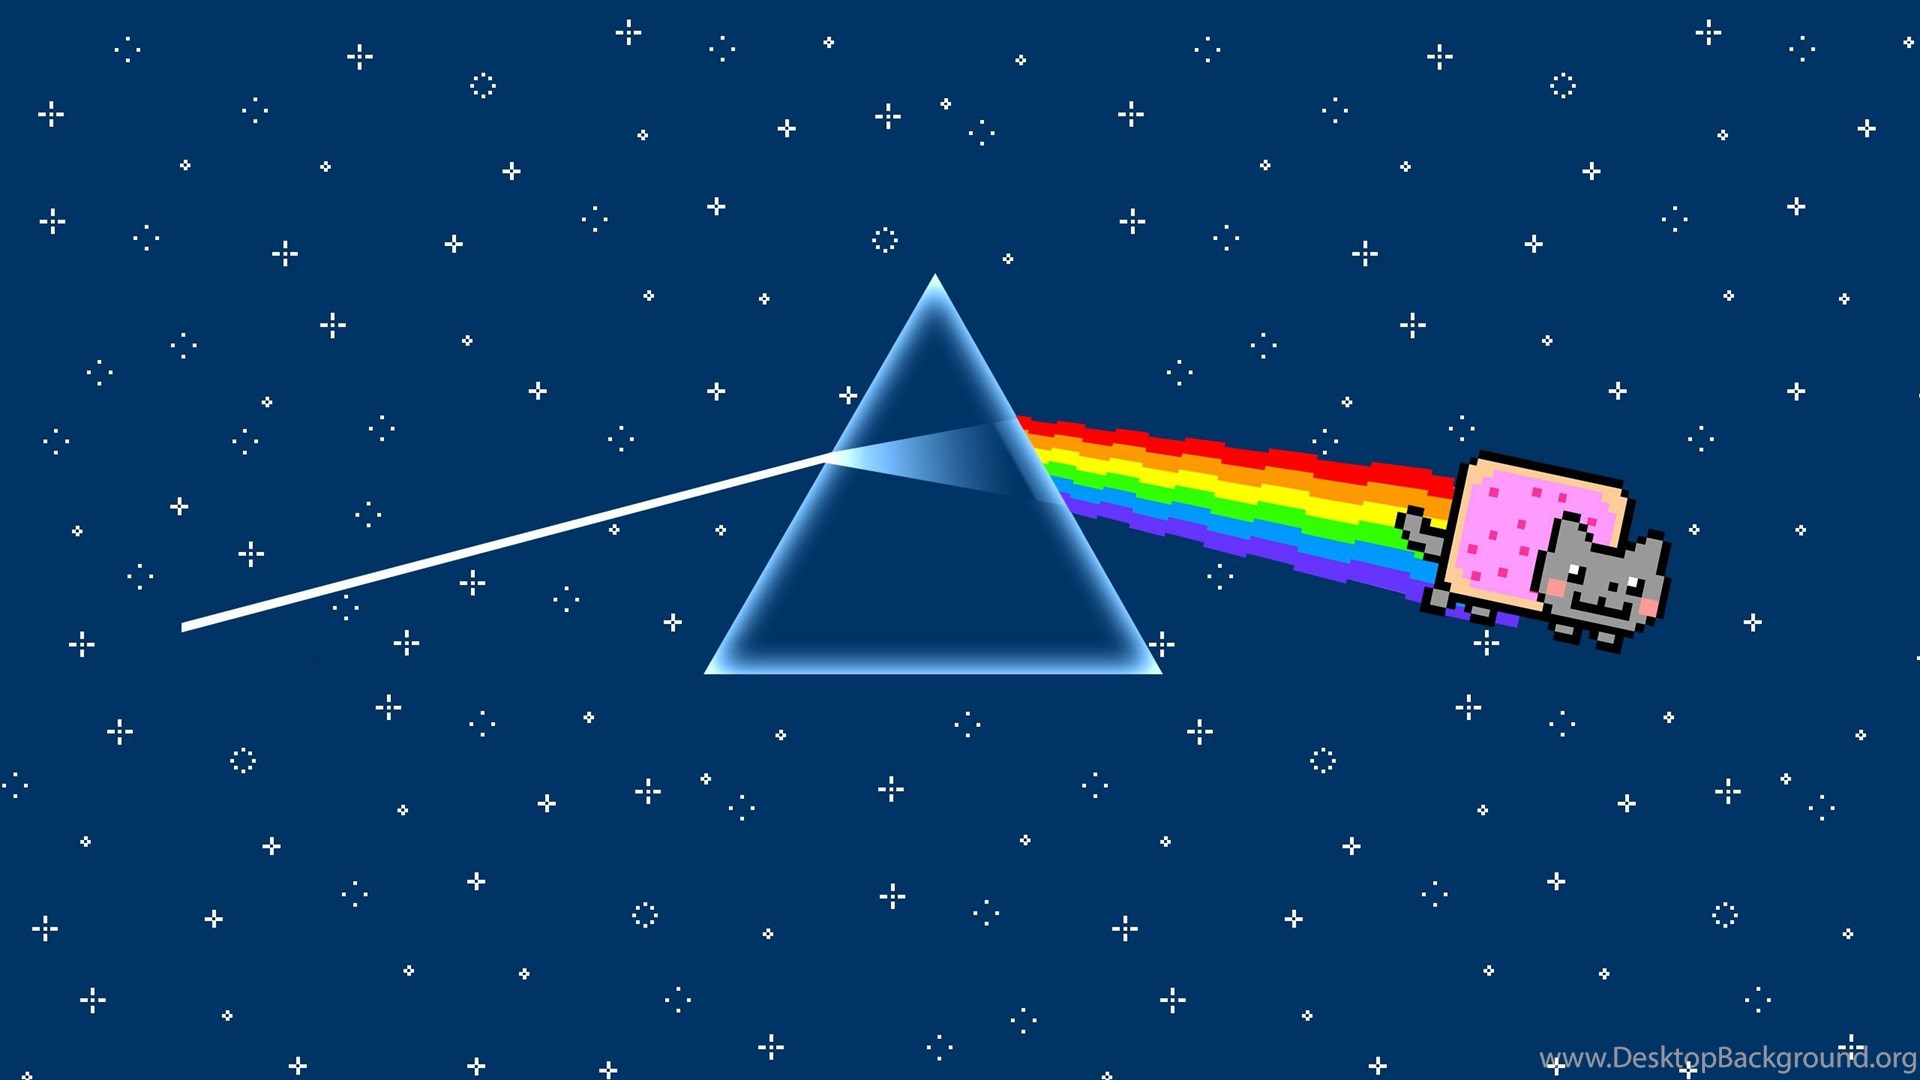 Wallpapers Pink Floyd Dark Side Of The Moon Poster Hd 2560x1440